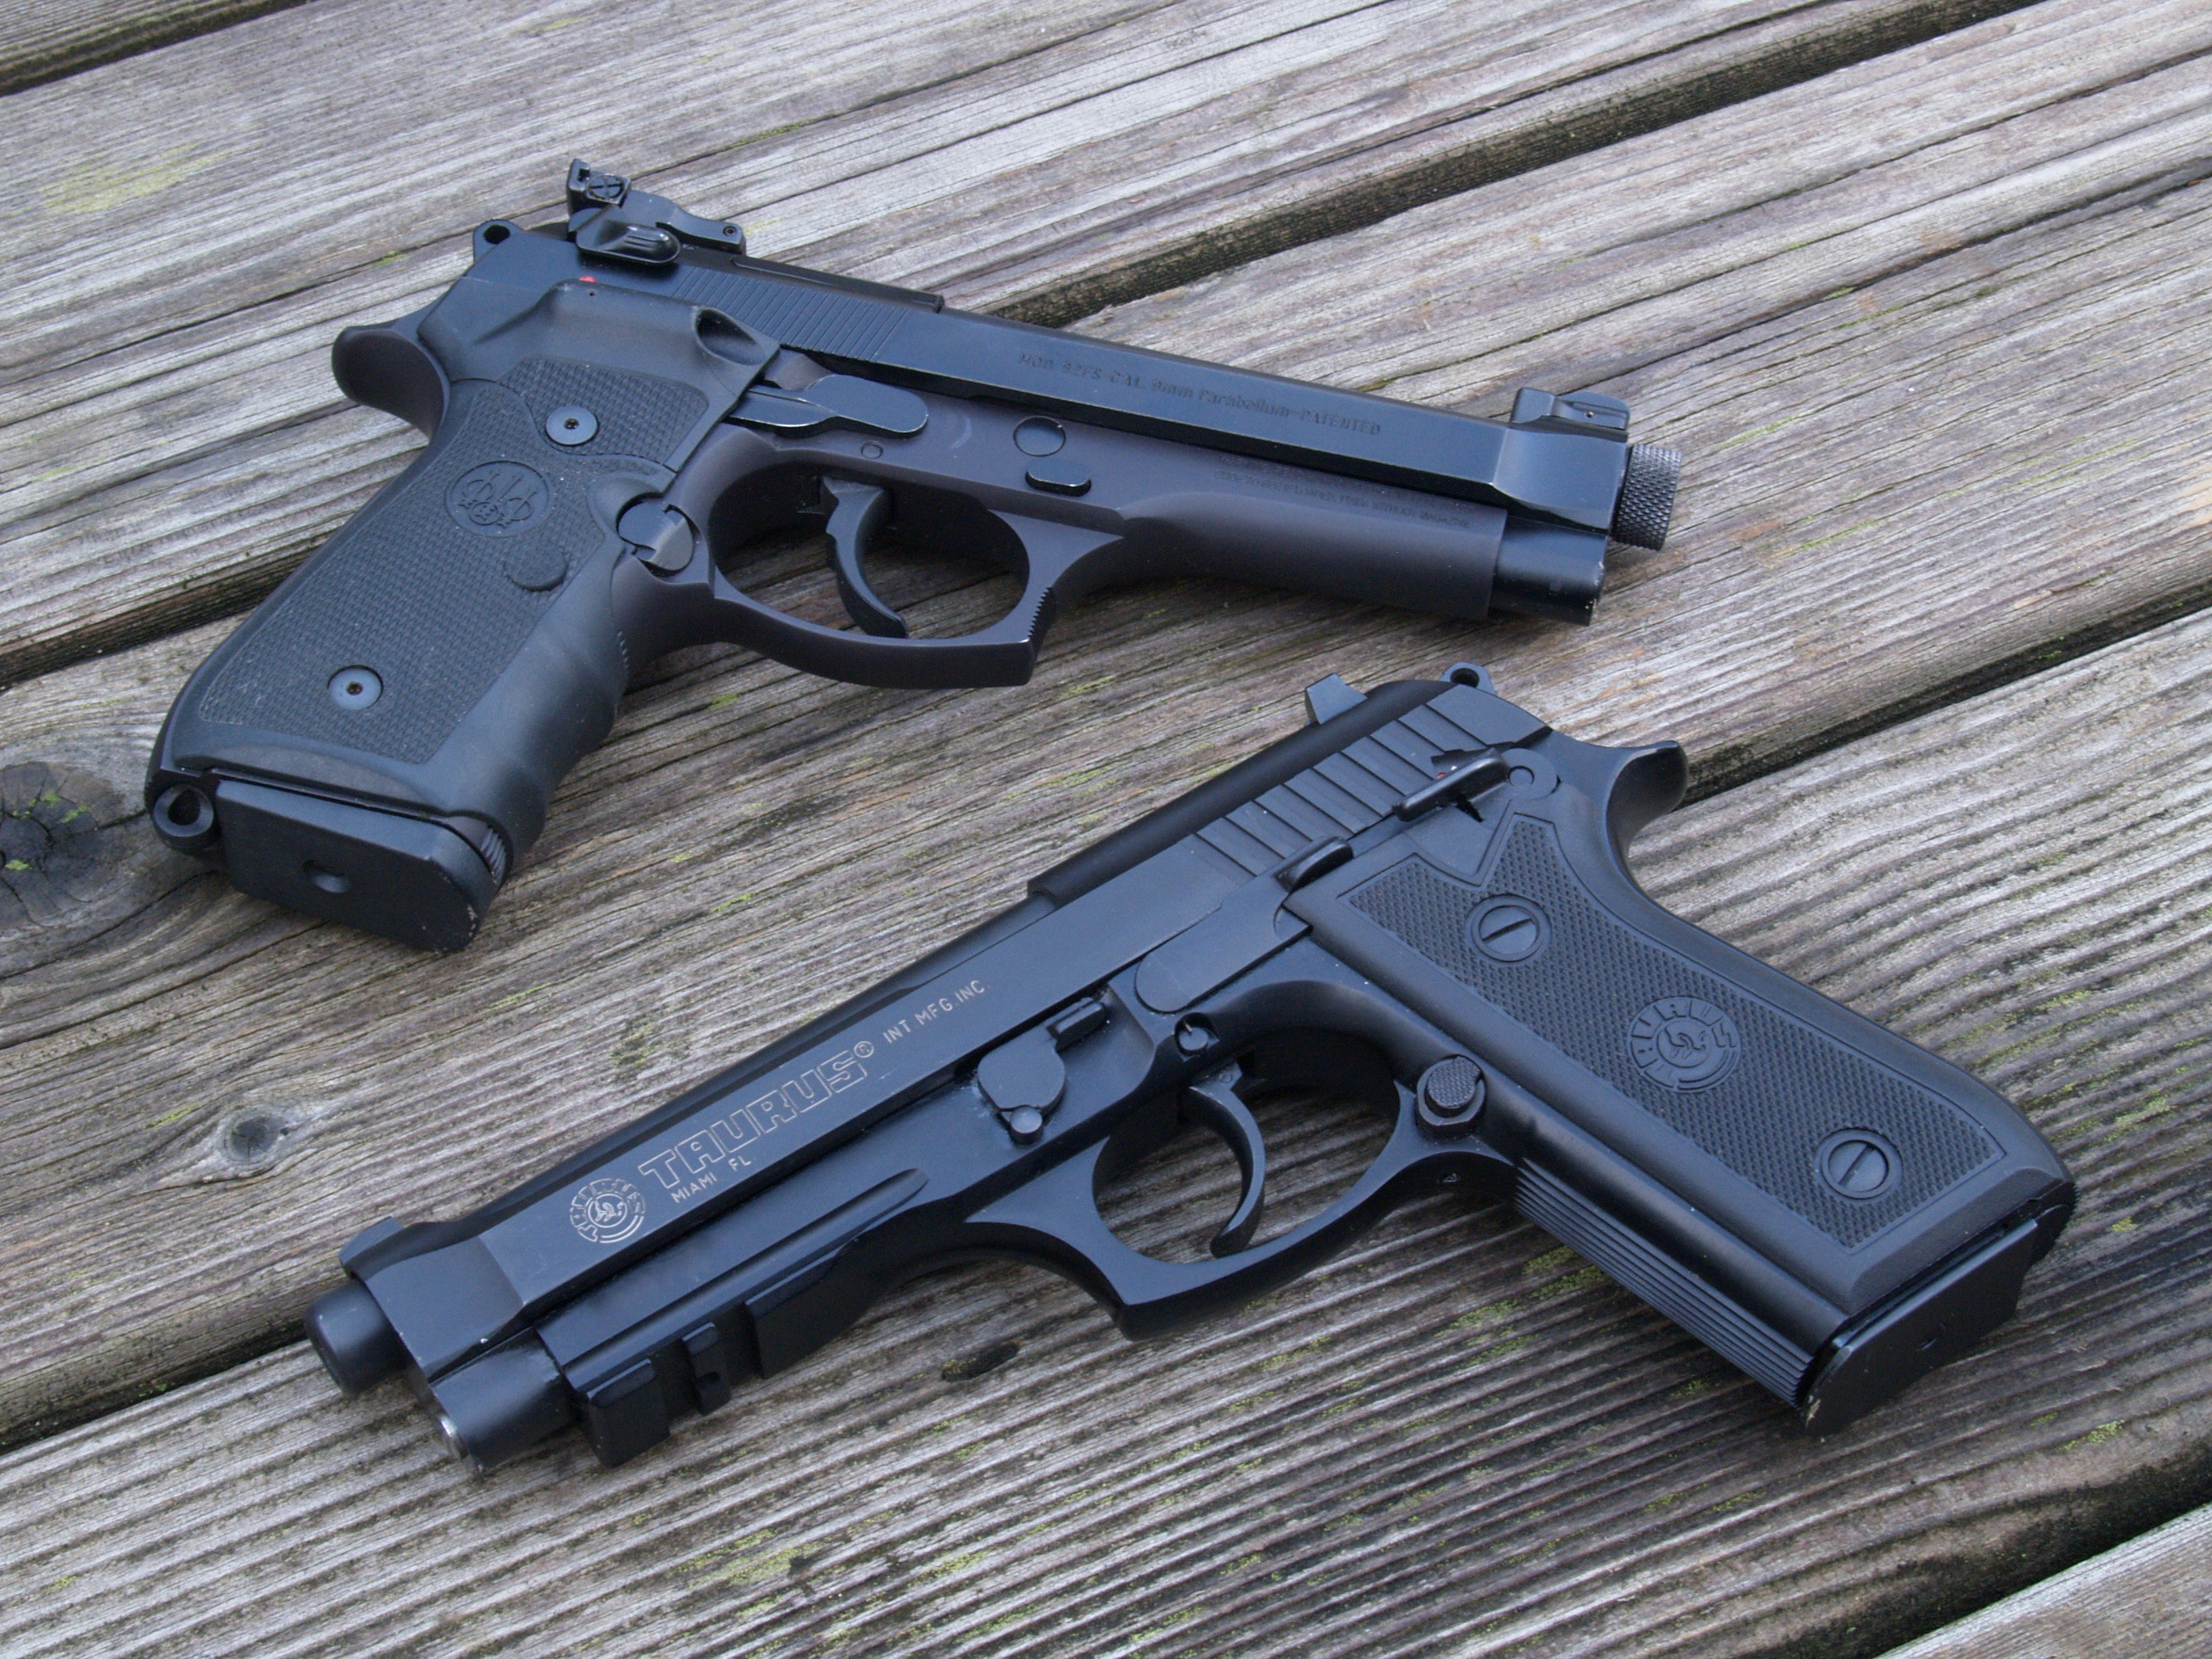 Beretta 92FS Wallpapers Images Photos Pictures Backgrounds 3264x2448